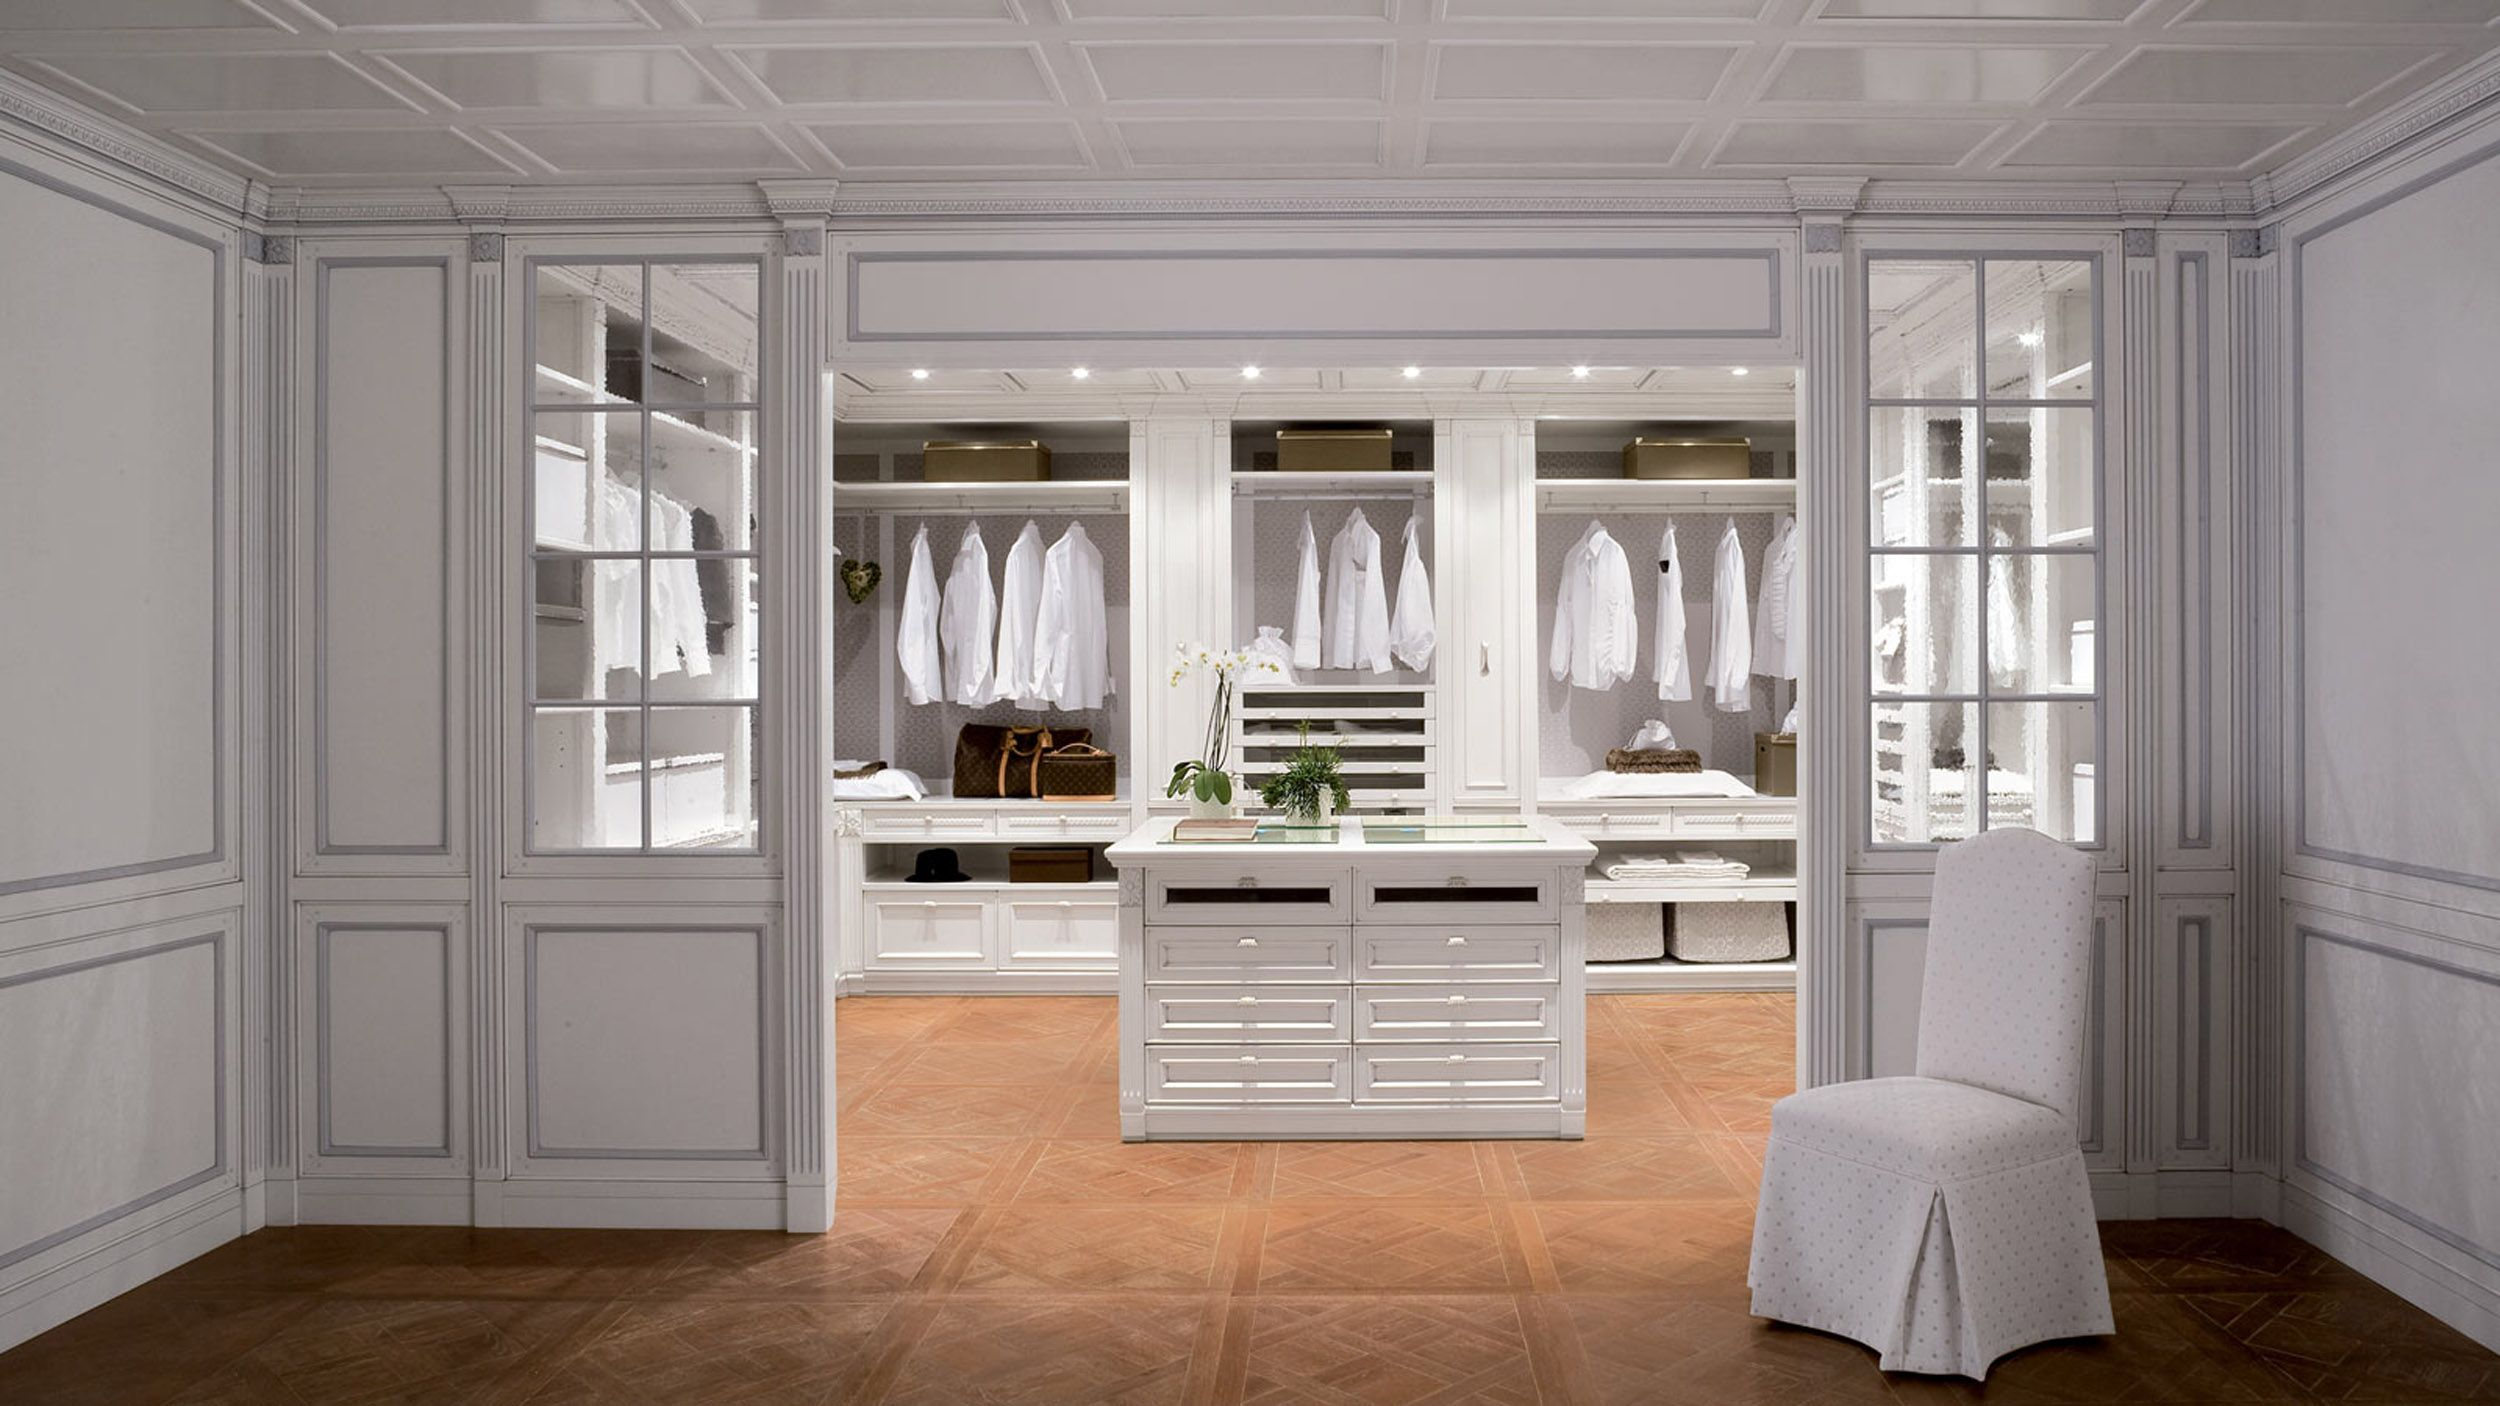 Bedroom Minimalist White Walk In Closet Design With Wooden